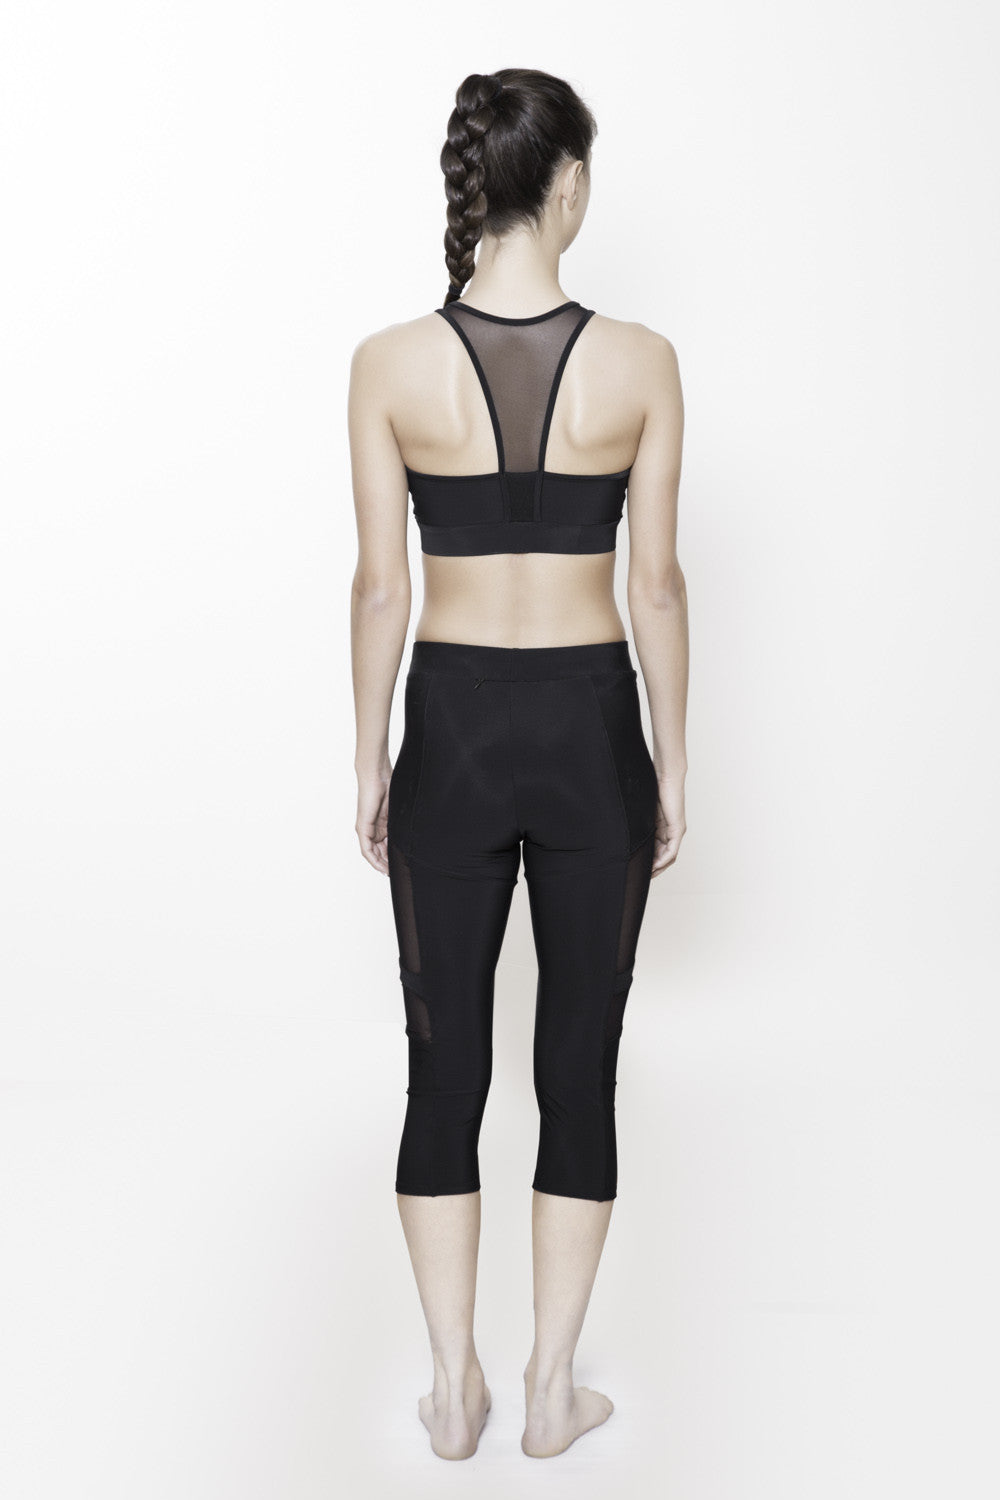 Midriff Cutout Bratop in Black